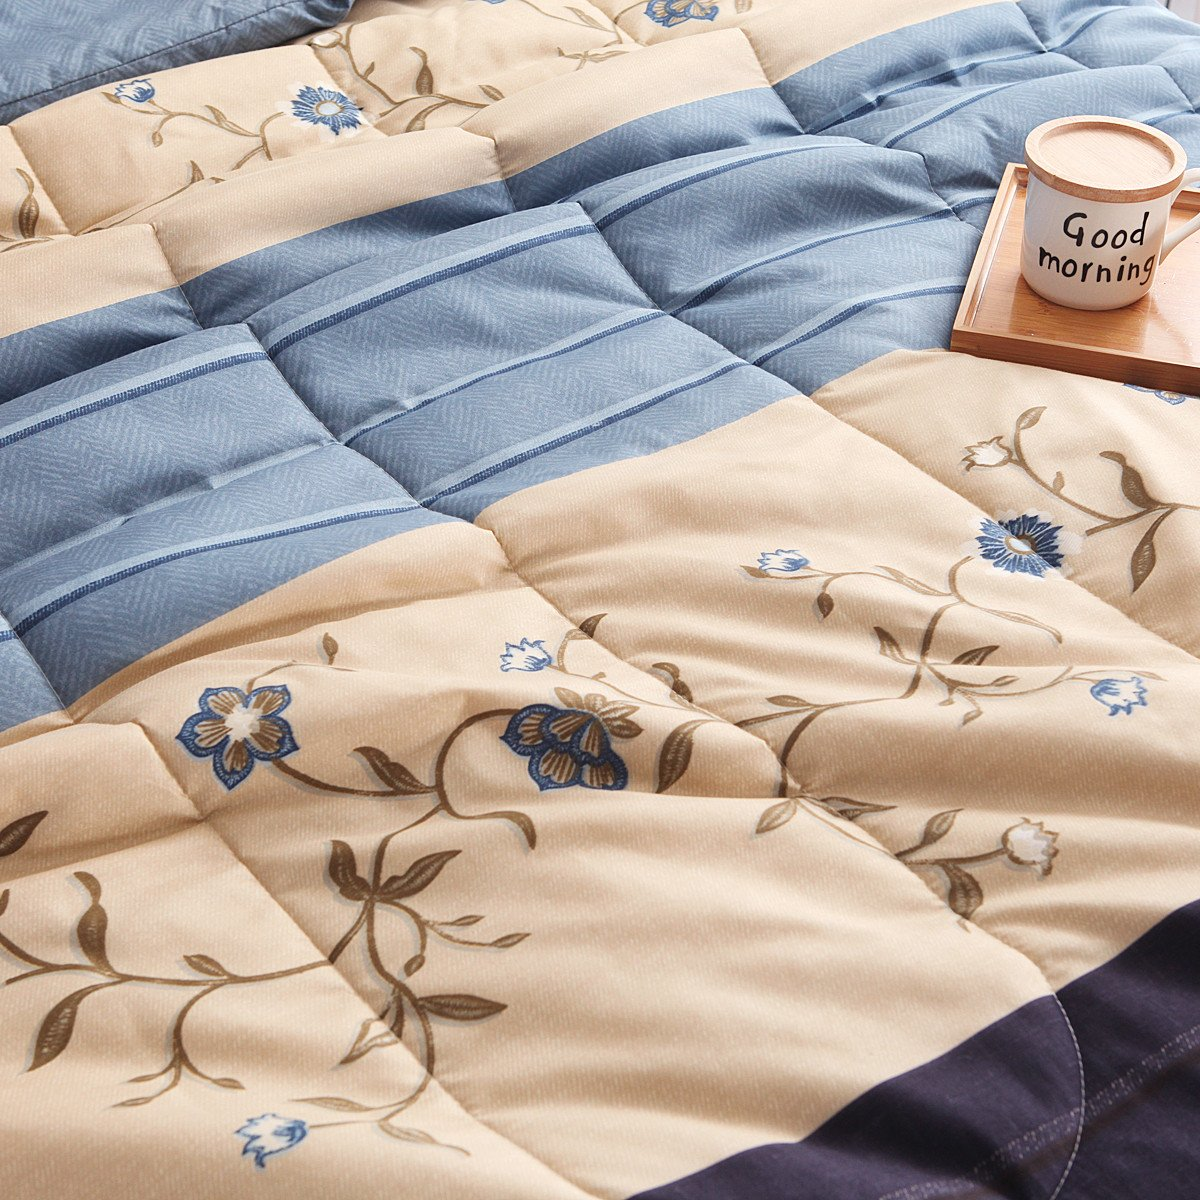 YOUSA 3-Piece Floral Quilts Striped Comfoter Bedding Sets Boys and Girls Bedspread Blue-Floral